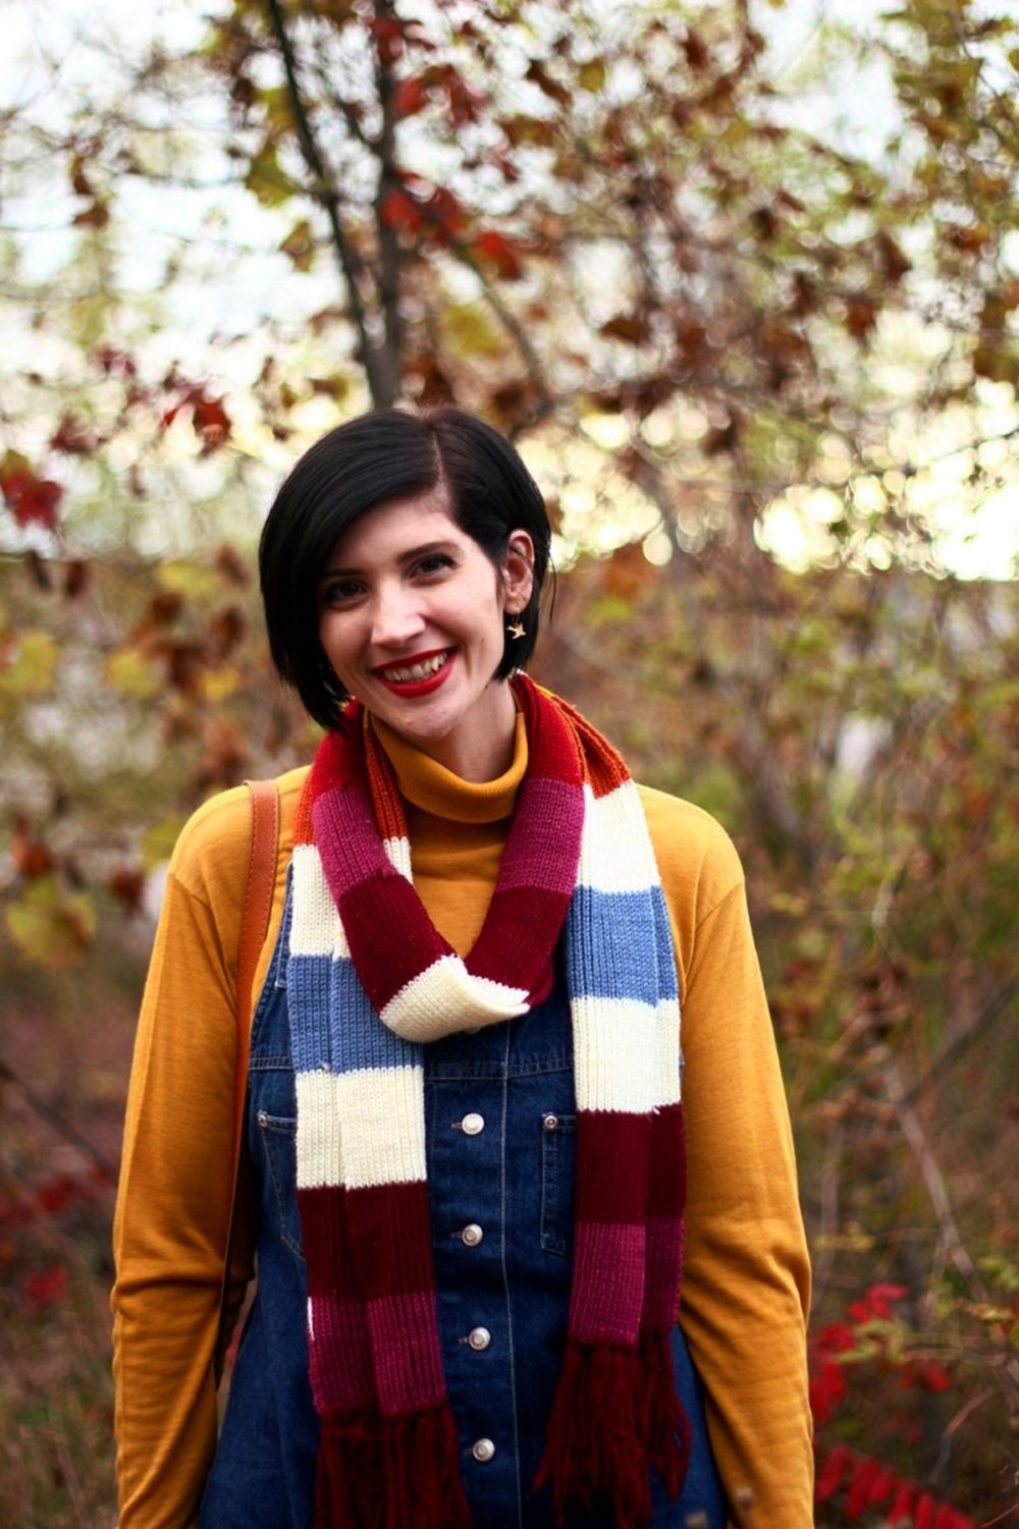 Outfit: Mustard yellow turtleneck, denim overall dress, multi-colored striped scarf, red lipstick